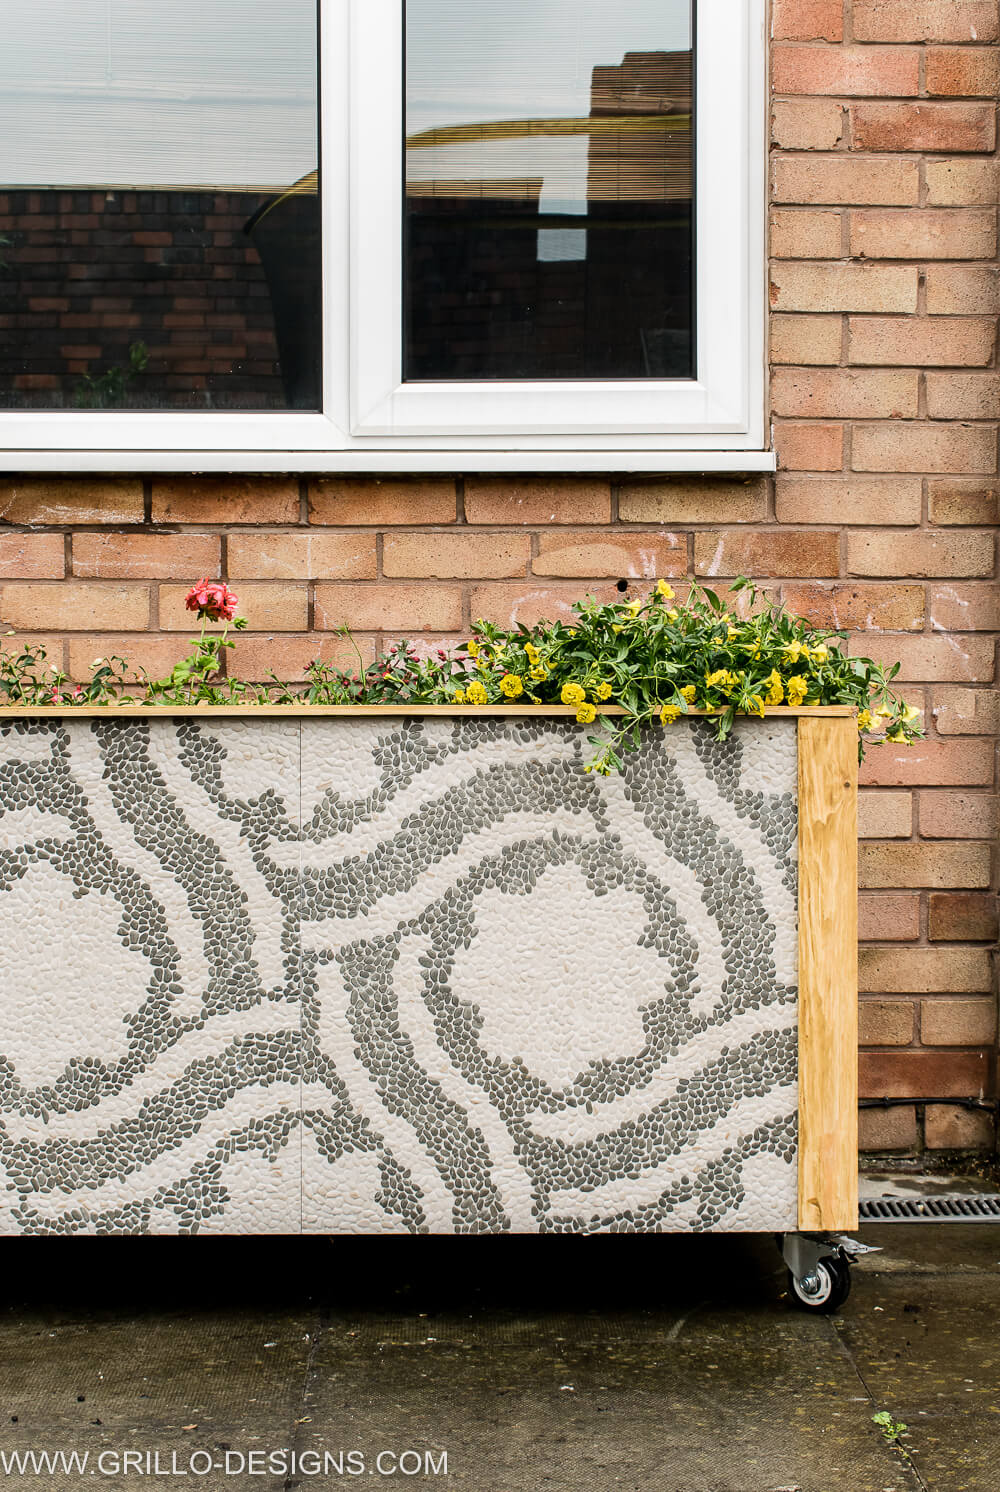 DIY TILE TROUGH PLANTER FOR THE GARDEN / GRILLO DESIGNS